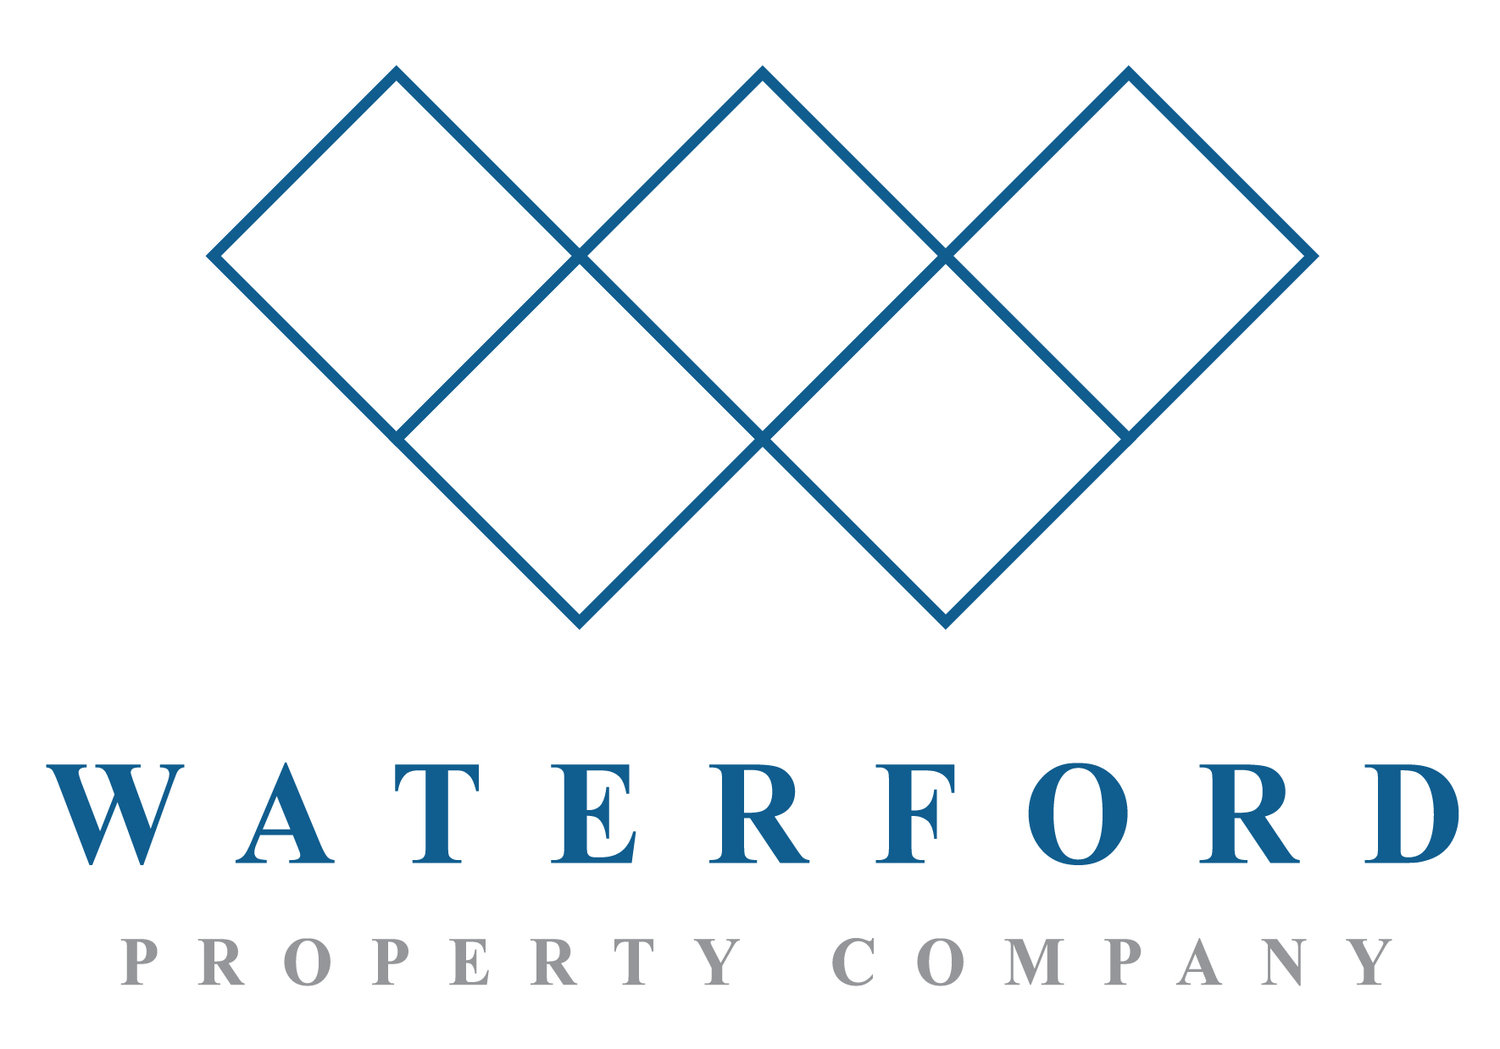 Waterford Property Company